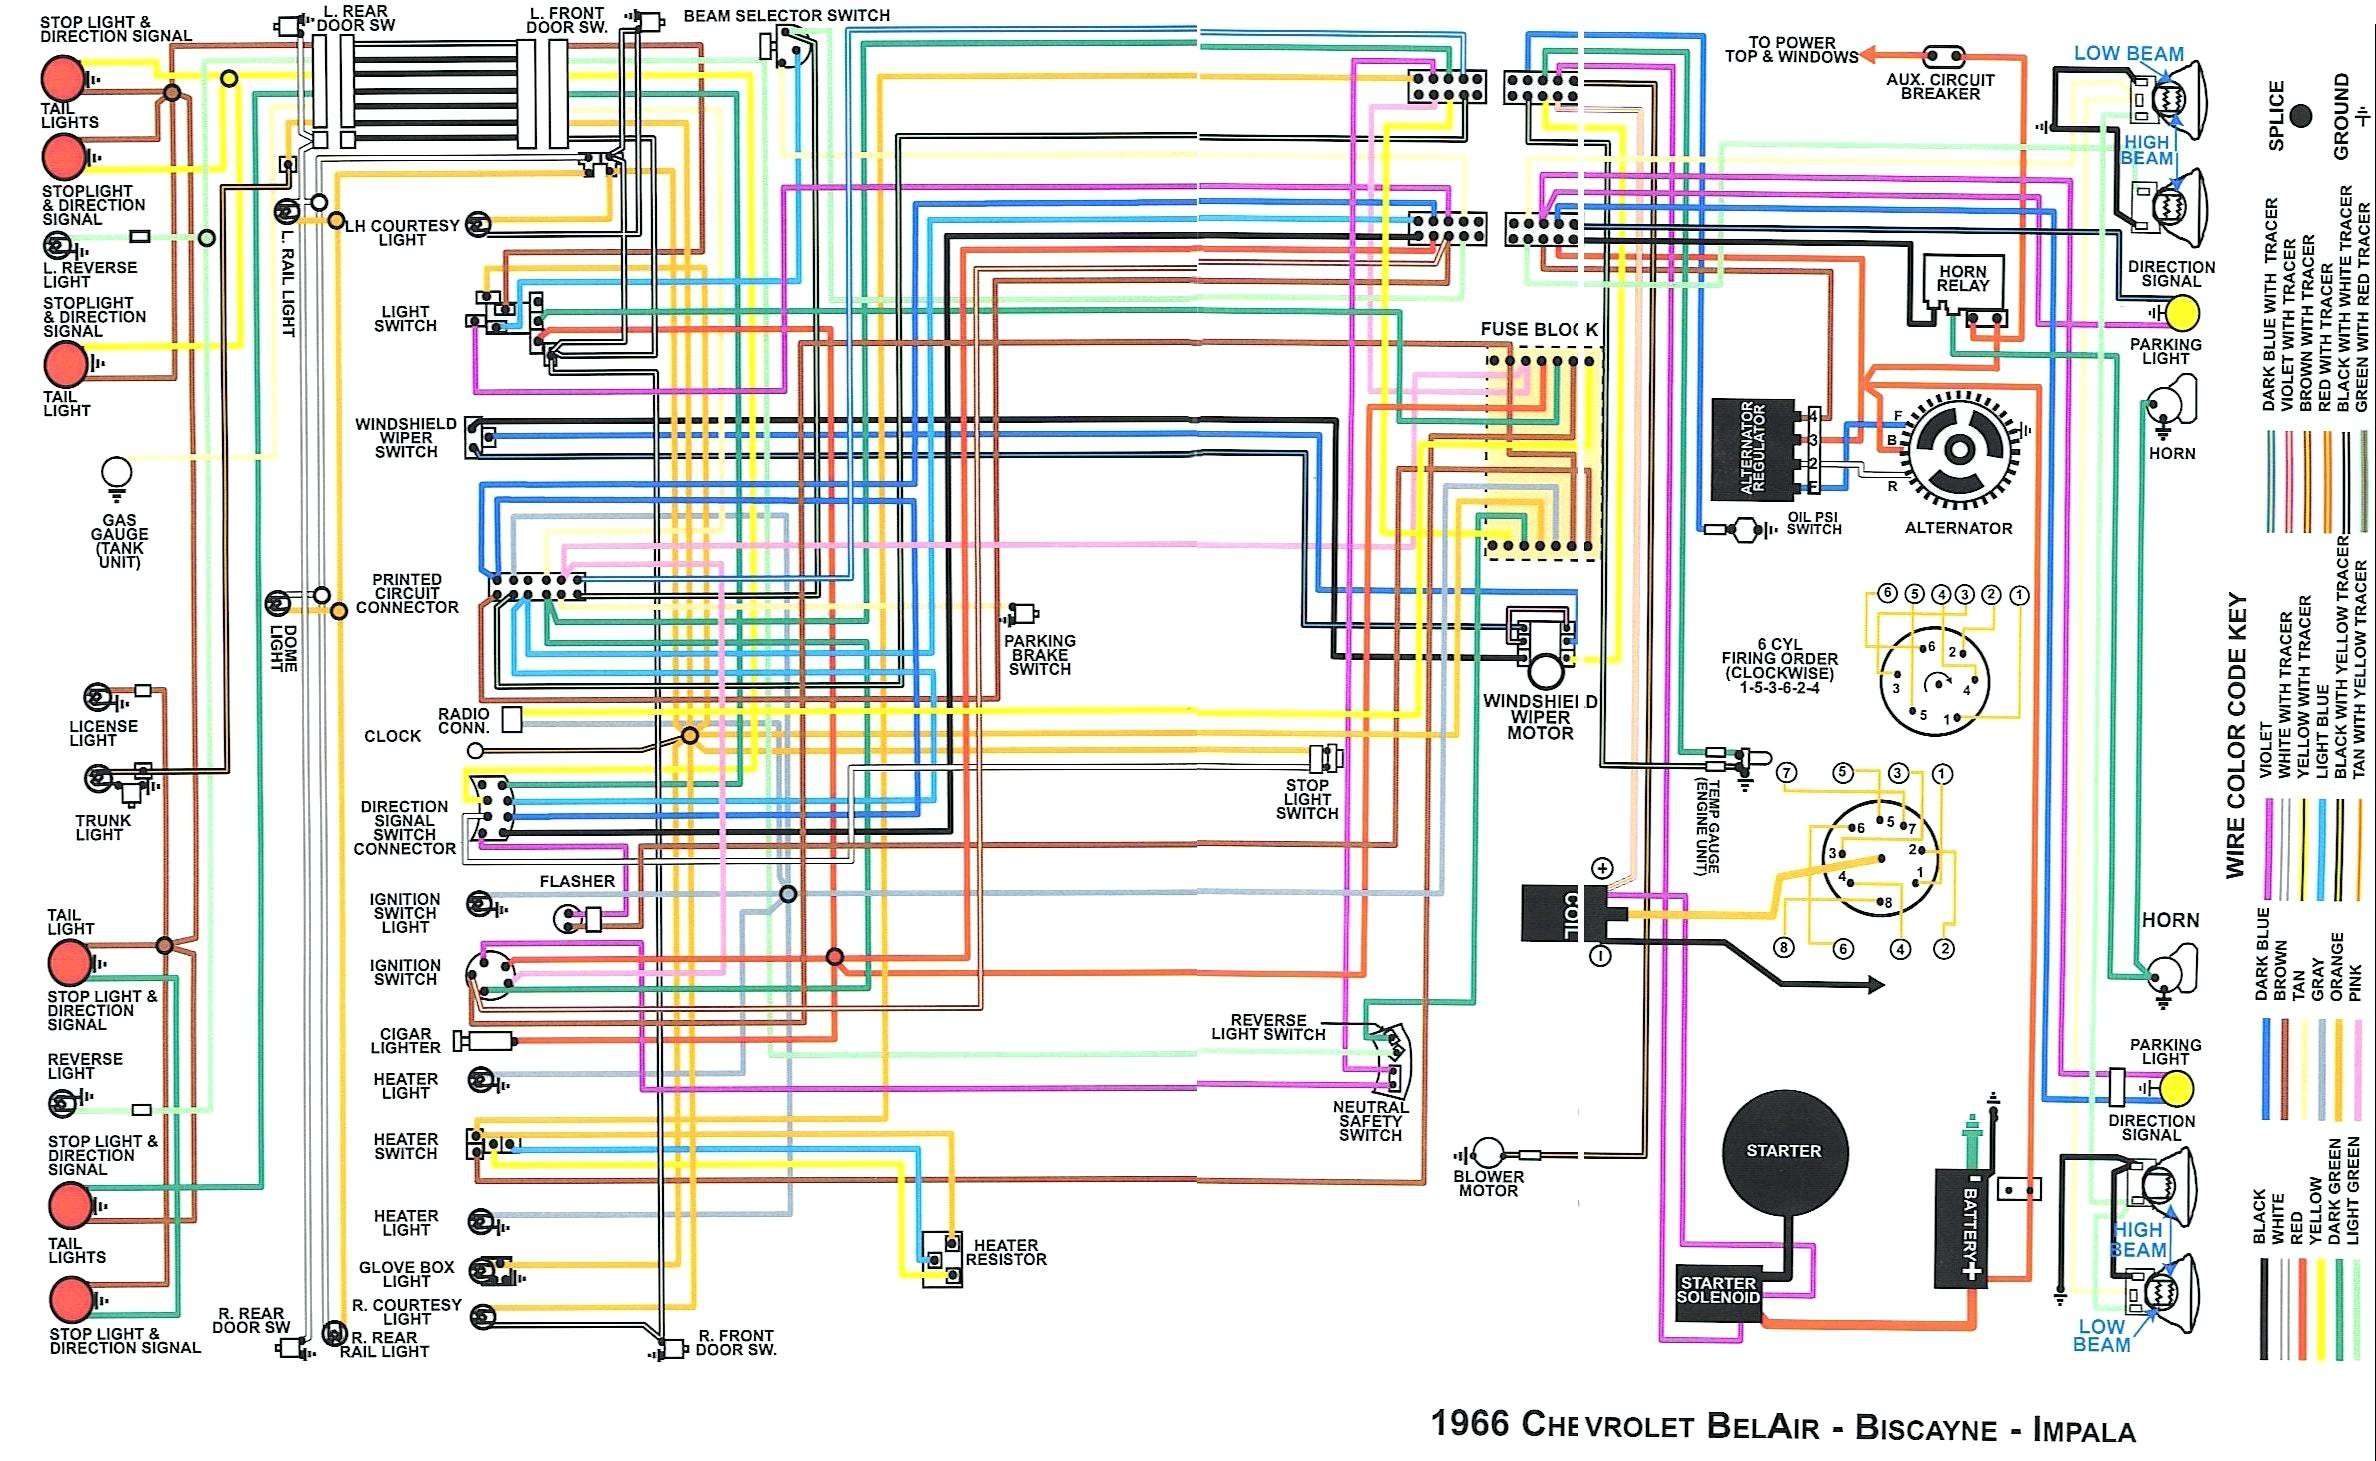 wiring diagram for 1962 chevrolet impala read all wiring diagram 1961 Chevy Truck Wiring Diagram